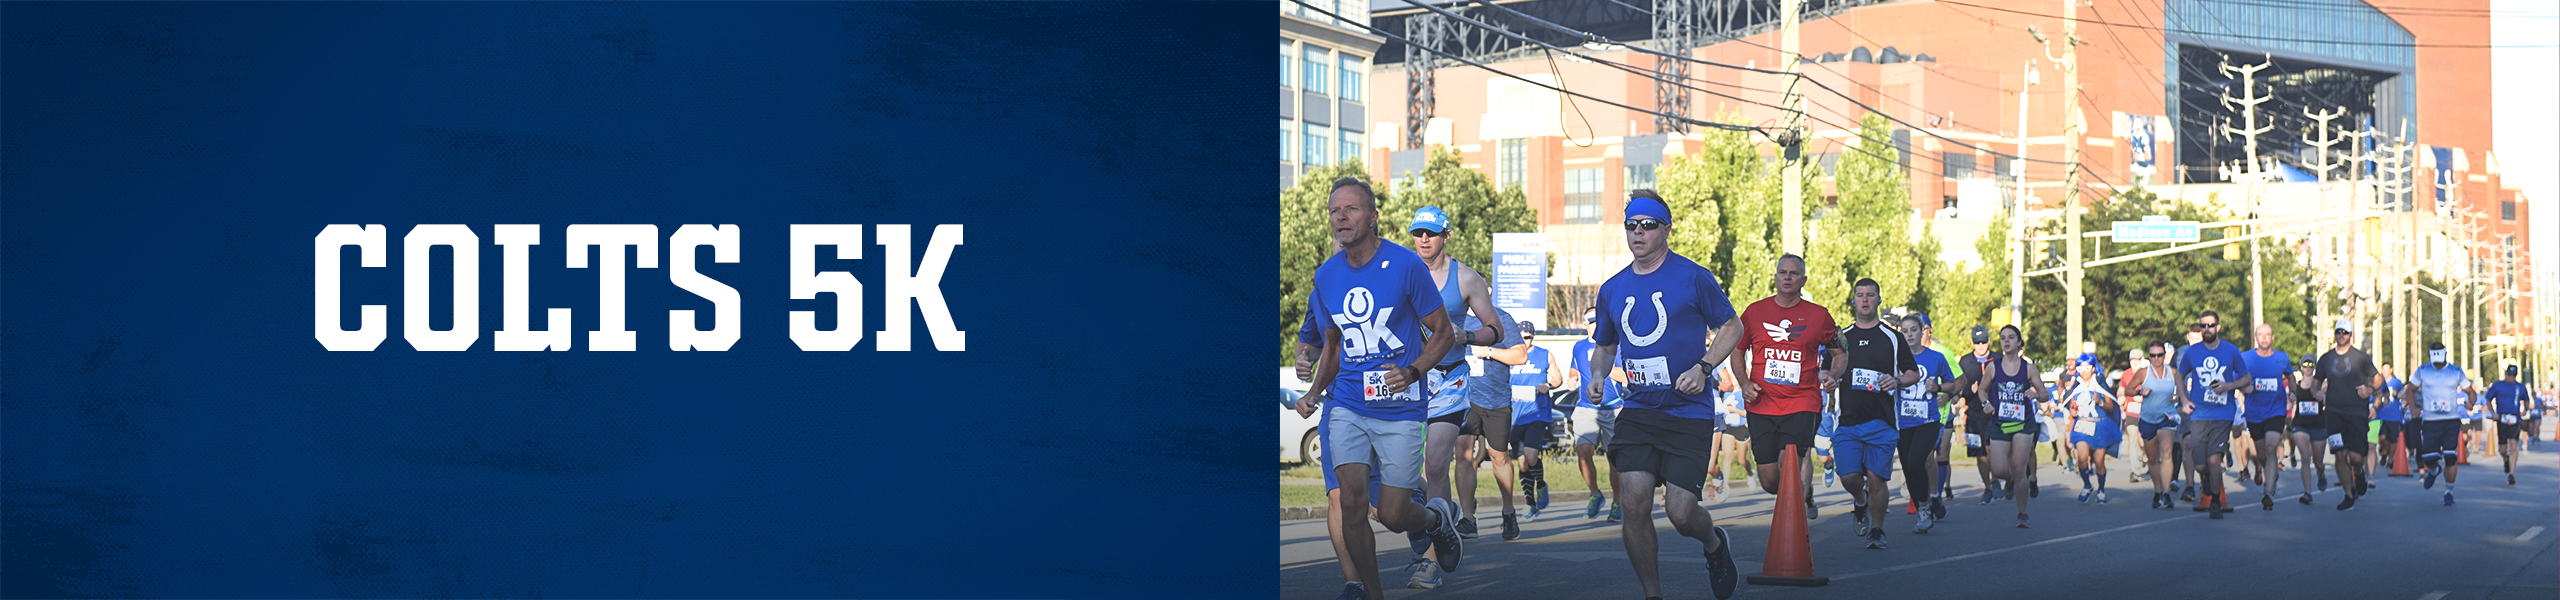 Indianapolis Colts 5K Event